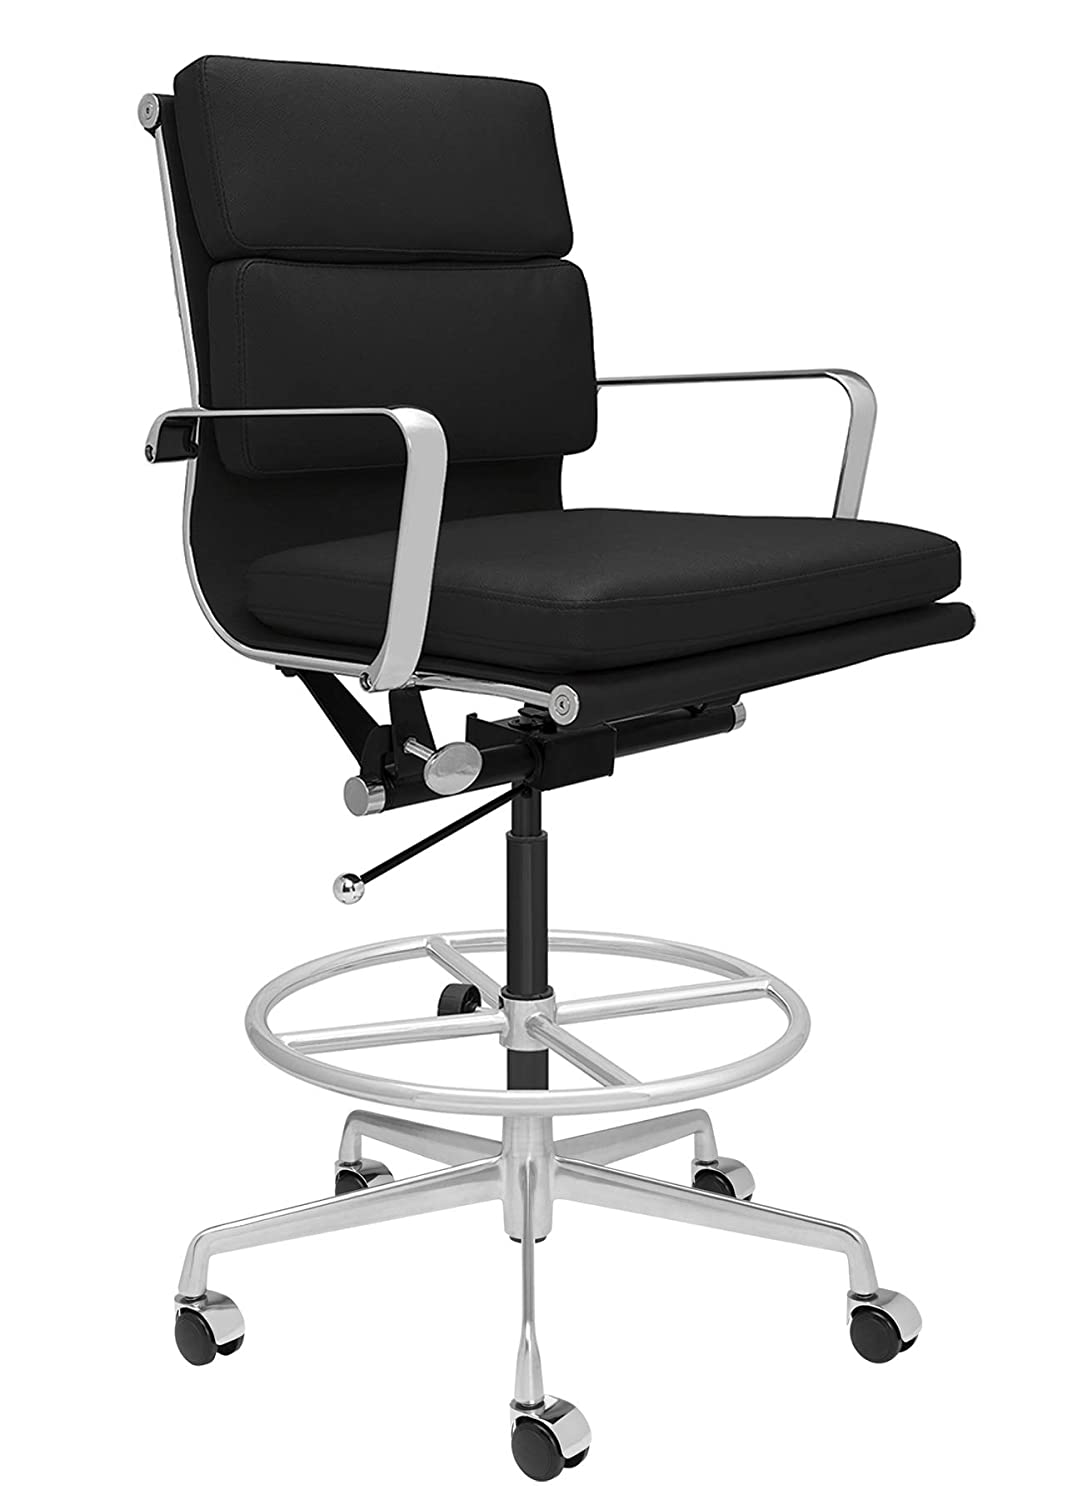 Ergonomically Designed and Commercial Grade Draft Height for Standing Desks White SOHO Soft Pad Drafting Chair